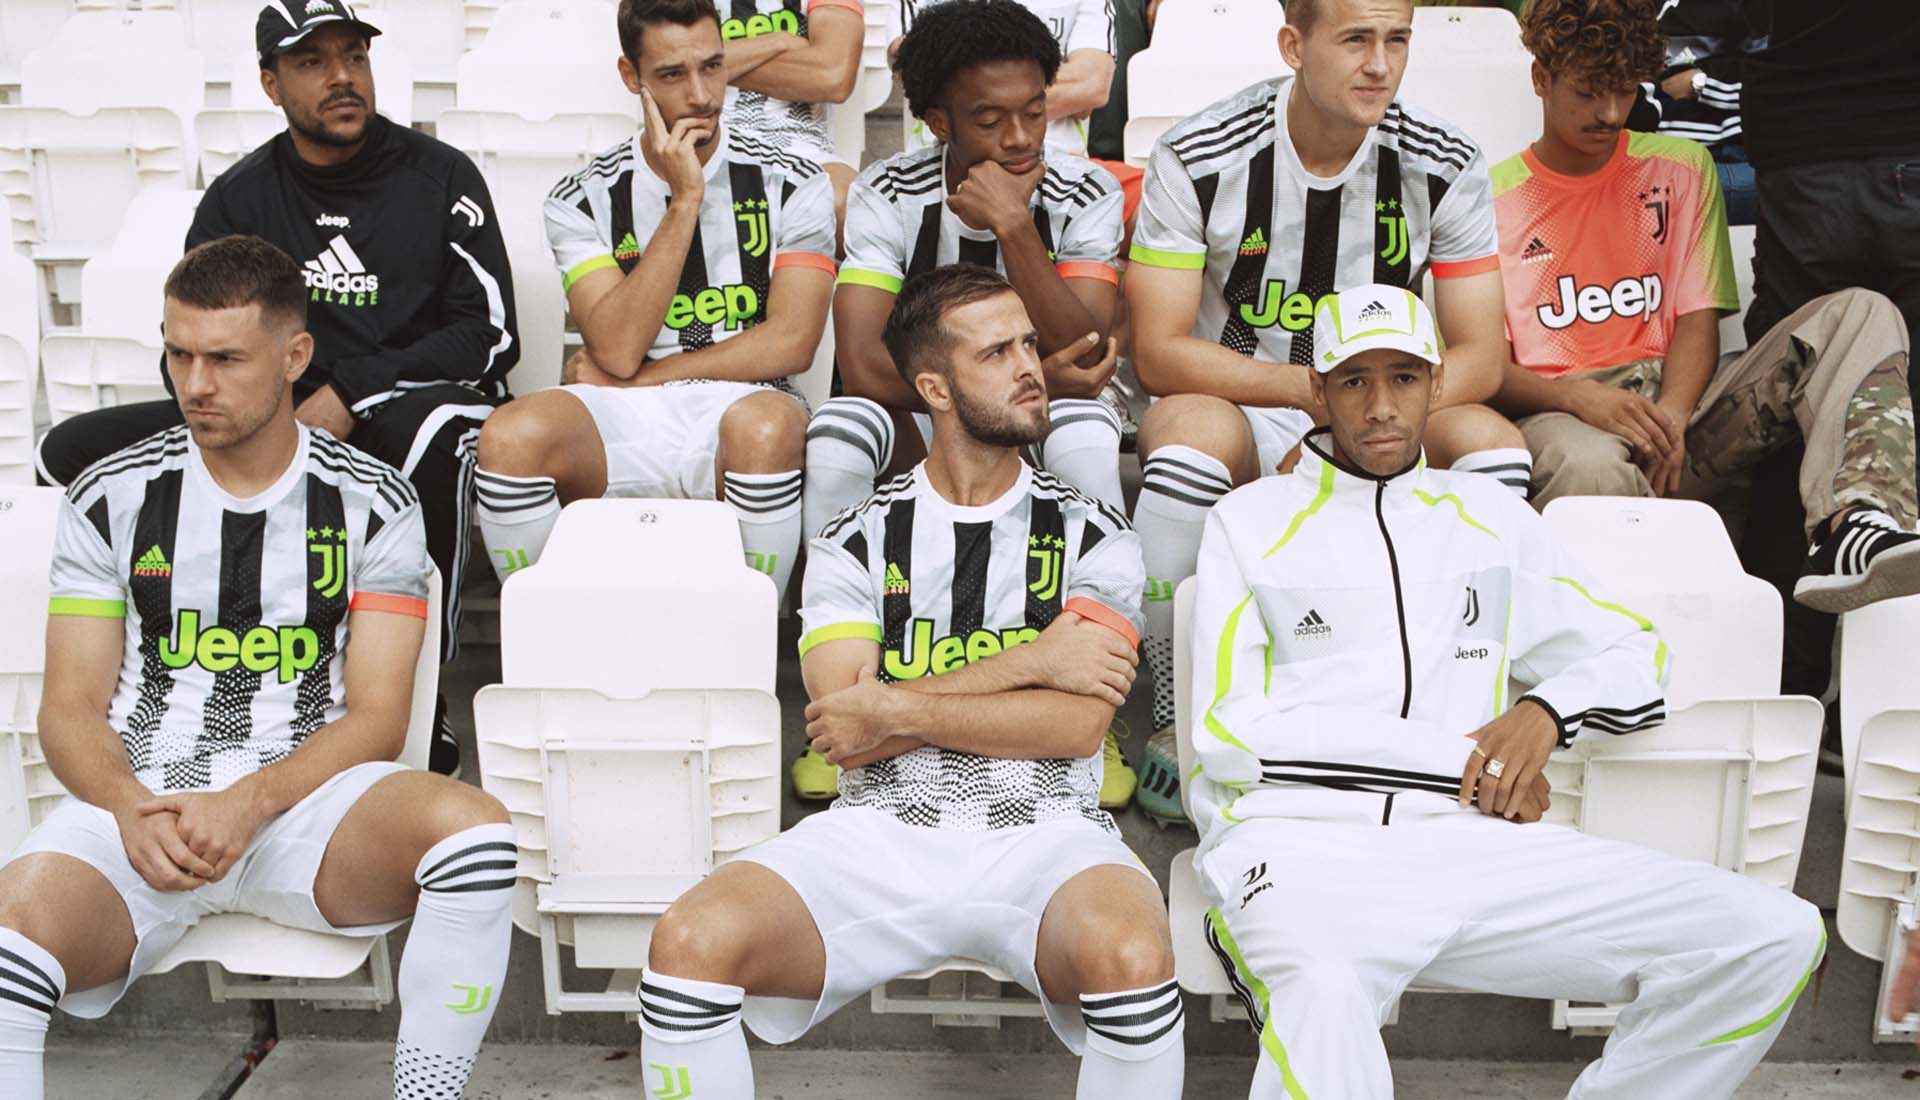 Palace Unveil New Lookbook For Juventus X Adidas Collection Soccerbible